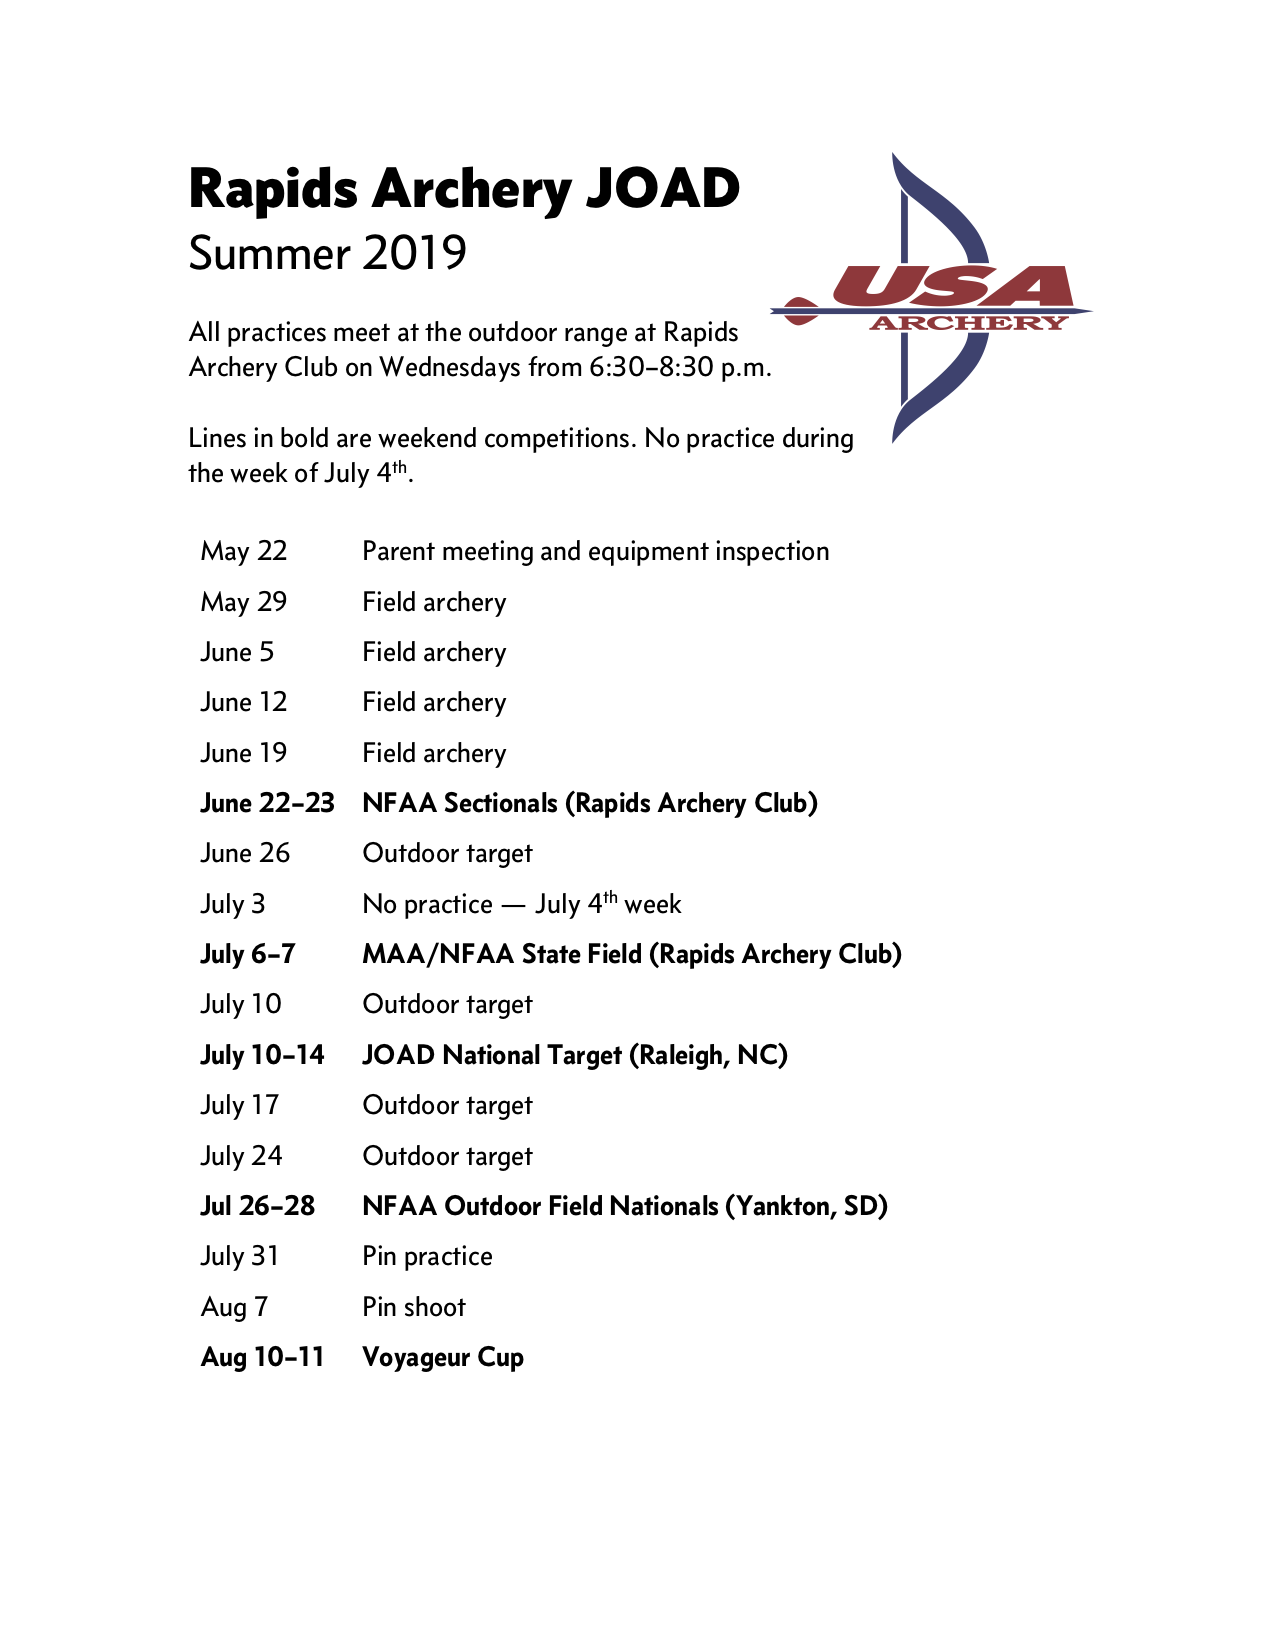 2019 Summer JOAD schedule.png